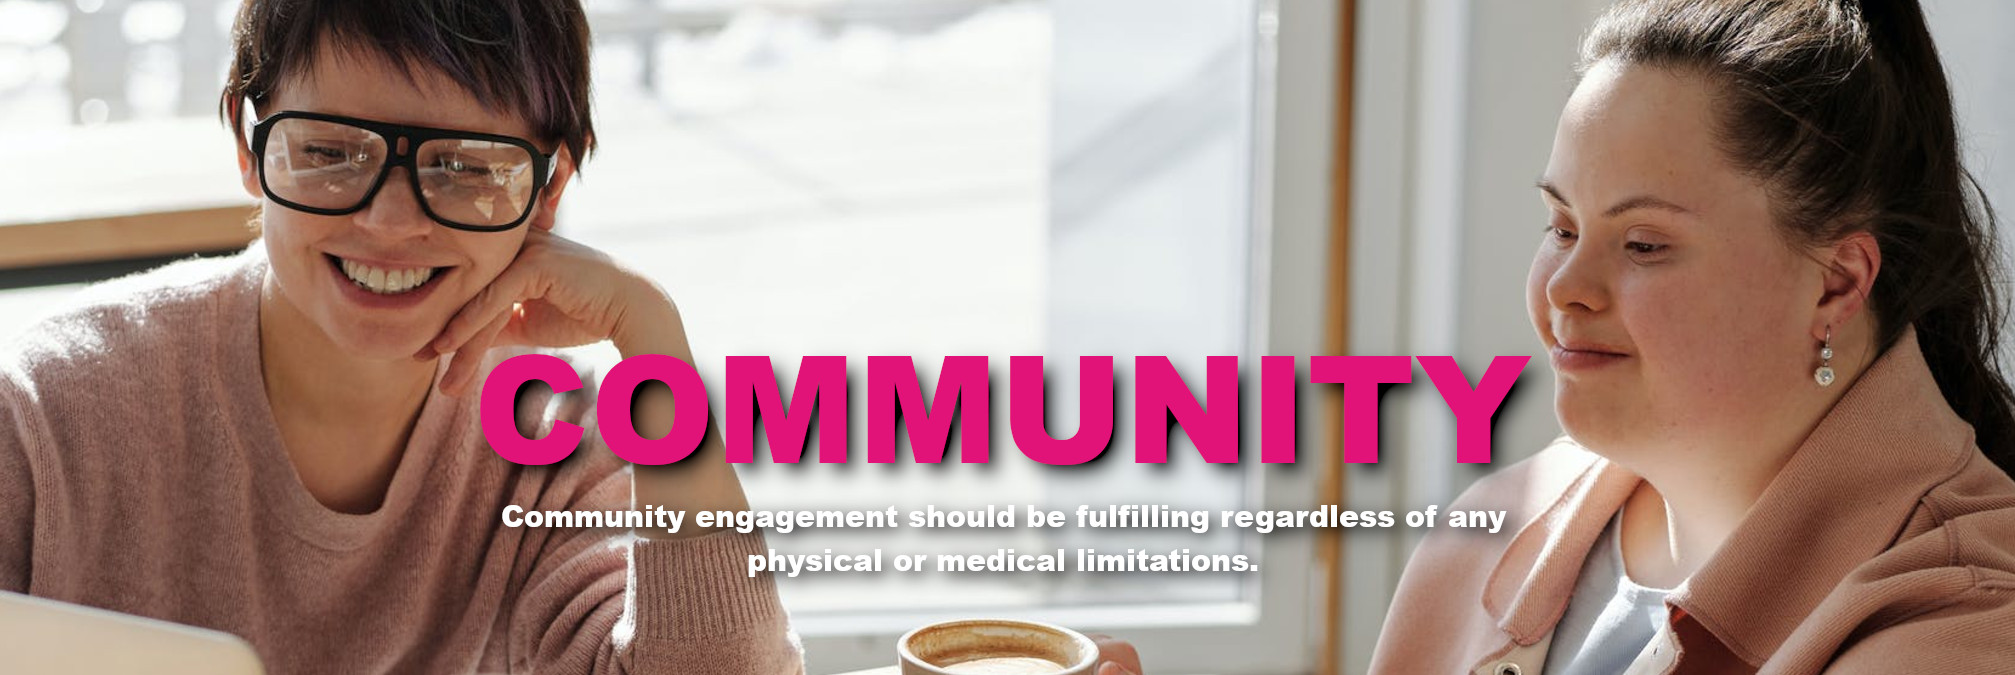 Community - Community engagement should be fulfilling regardless of any physical or medical limitations.